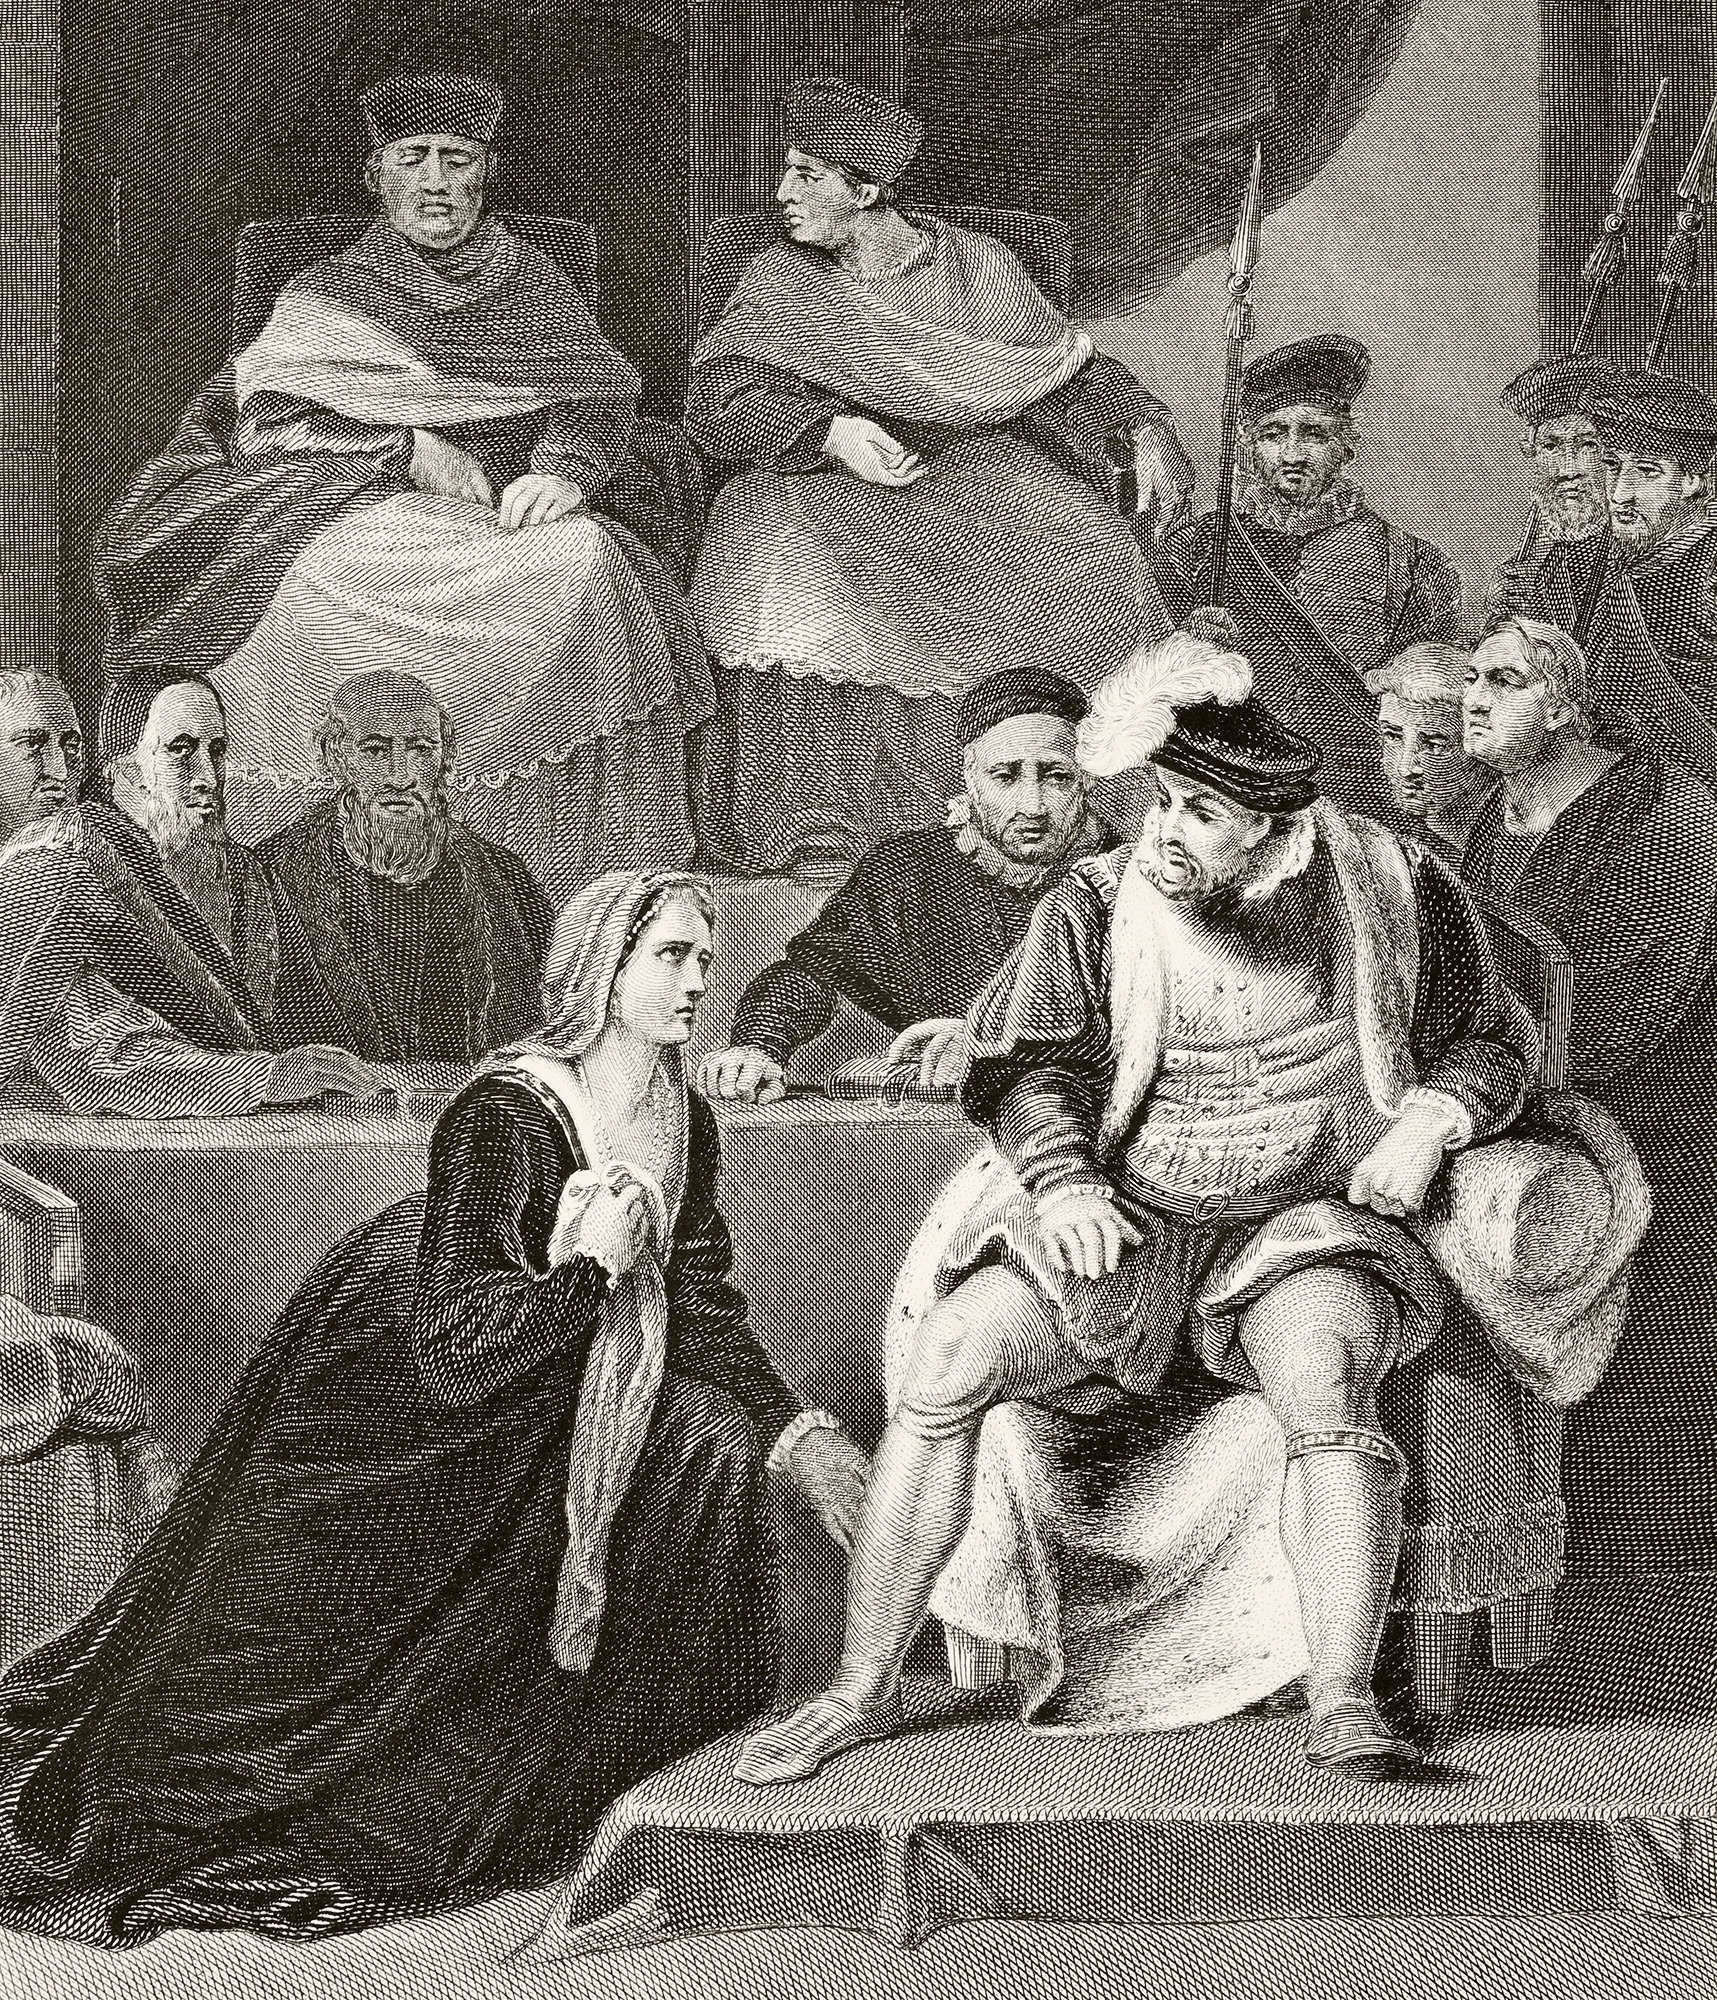 Catherine Of Aragon kneeling before her husband King Henry VIII of England at the trial of their marriage From The National and Domestic History of England by William Aubrey published London circa 1890